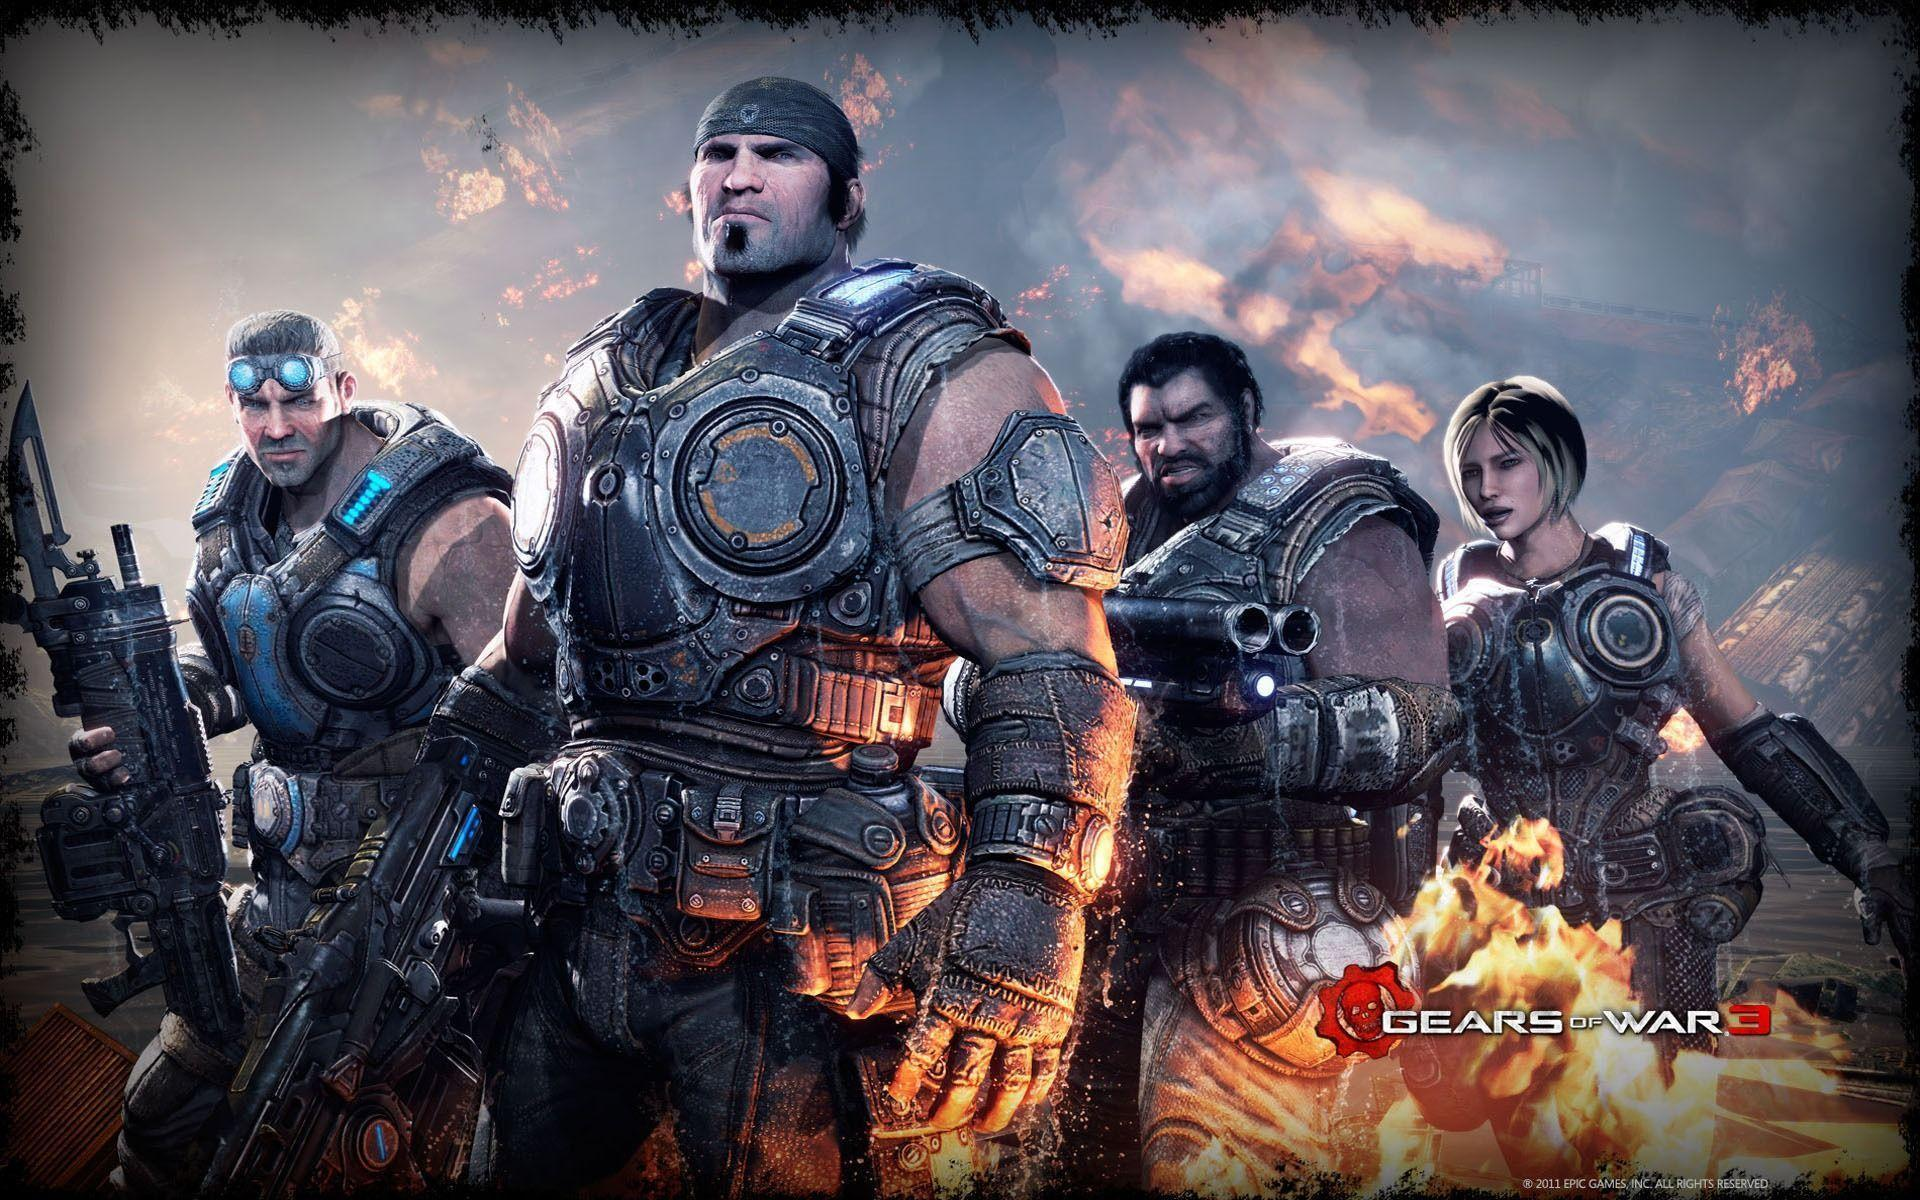 Gears Of War 3 Wallpapers HD